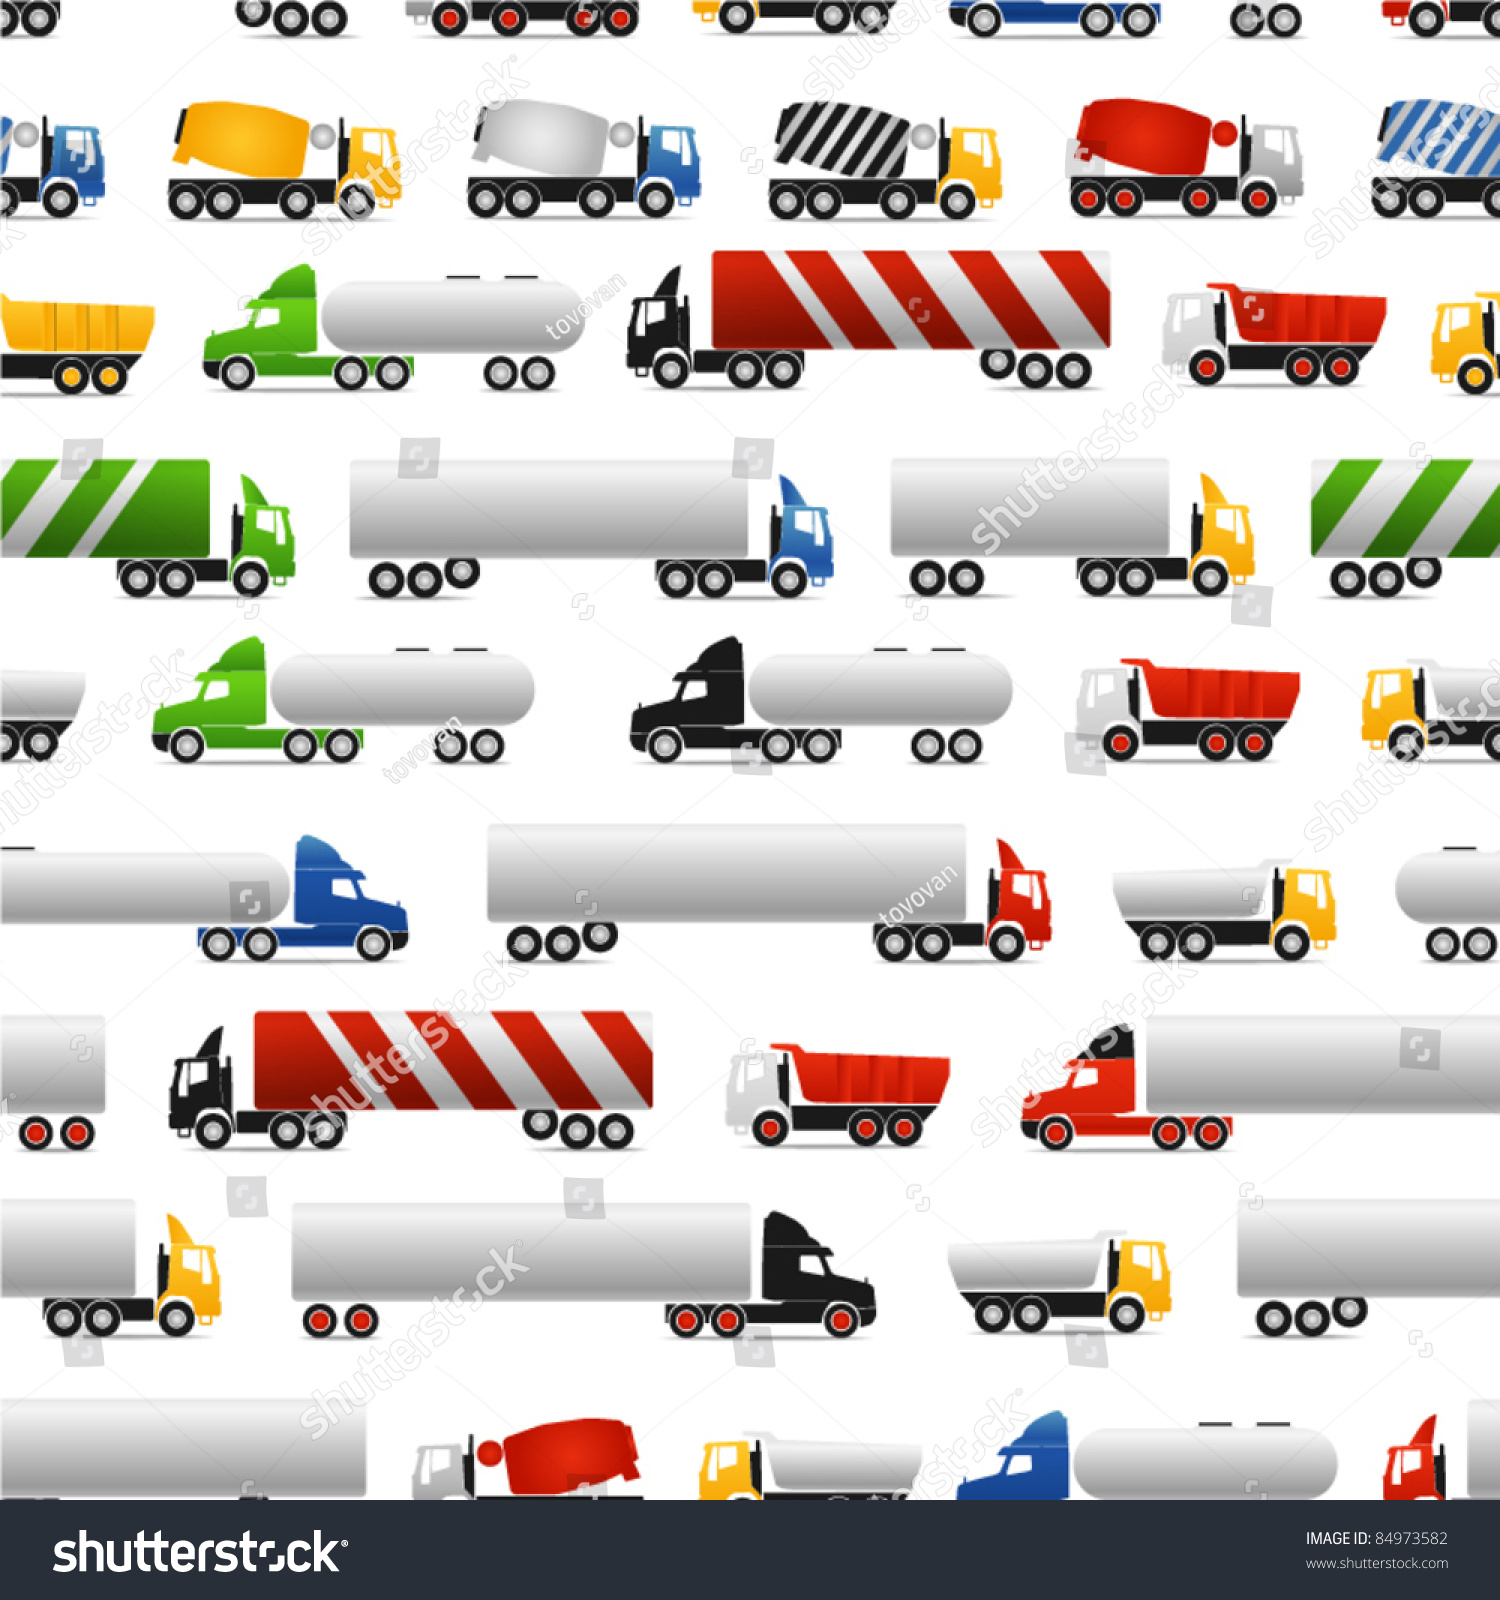 Different Types Of Trucks Seamless Background Stock Vector